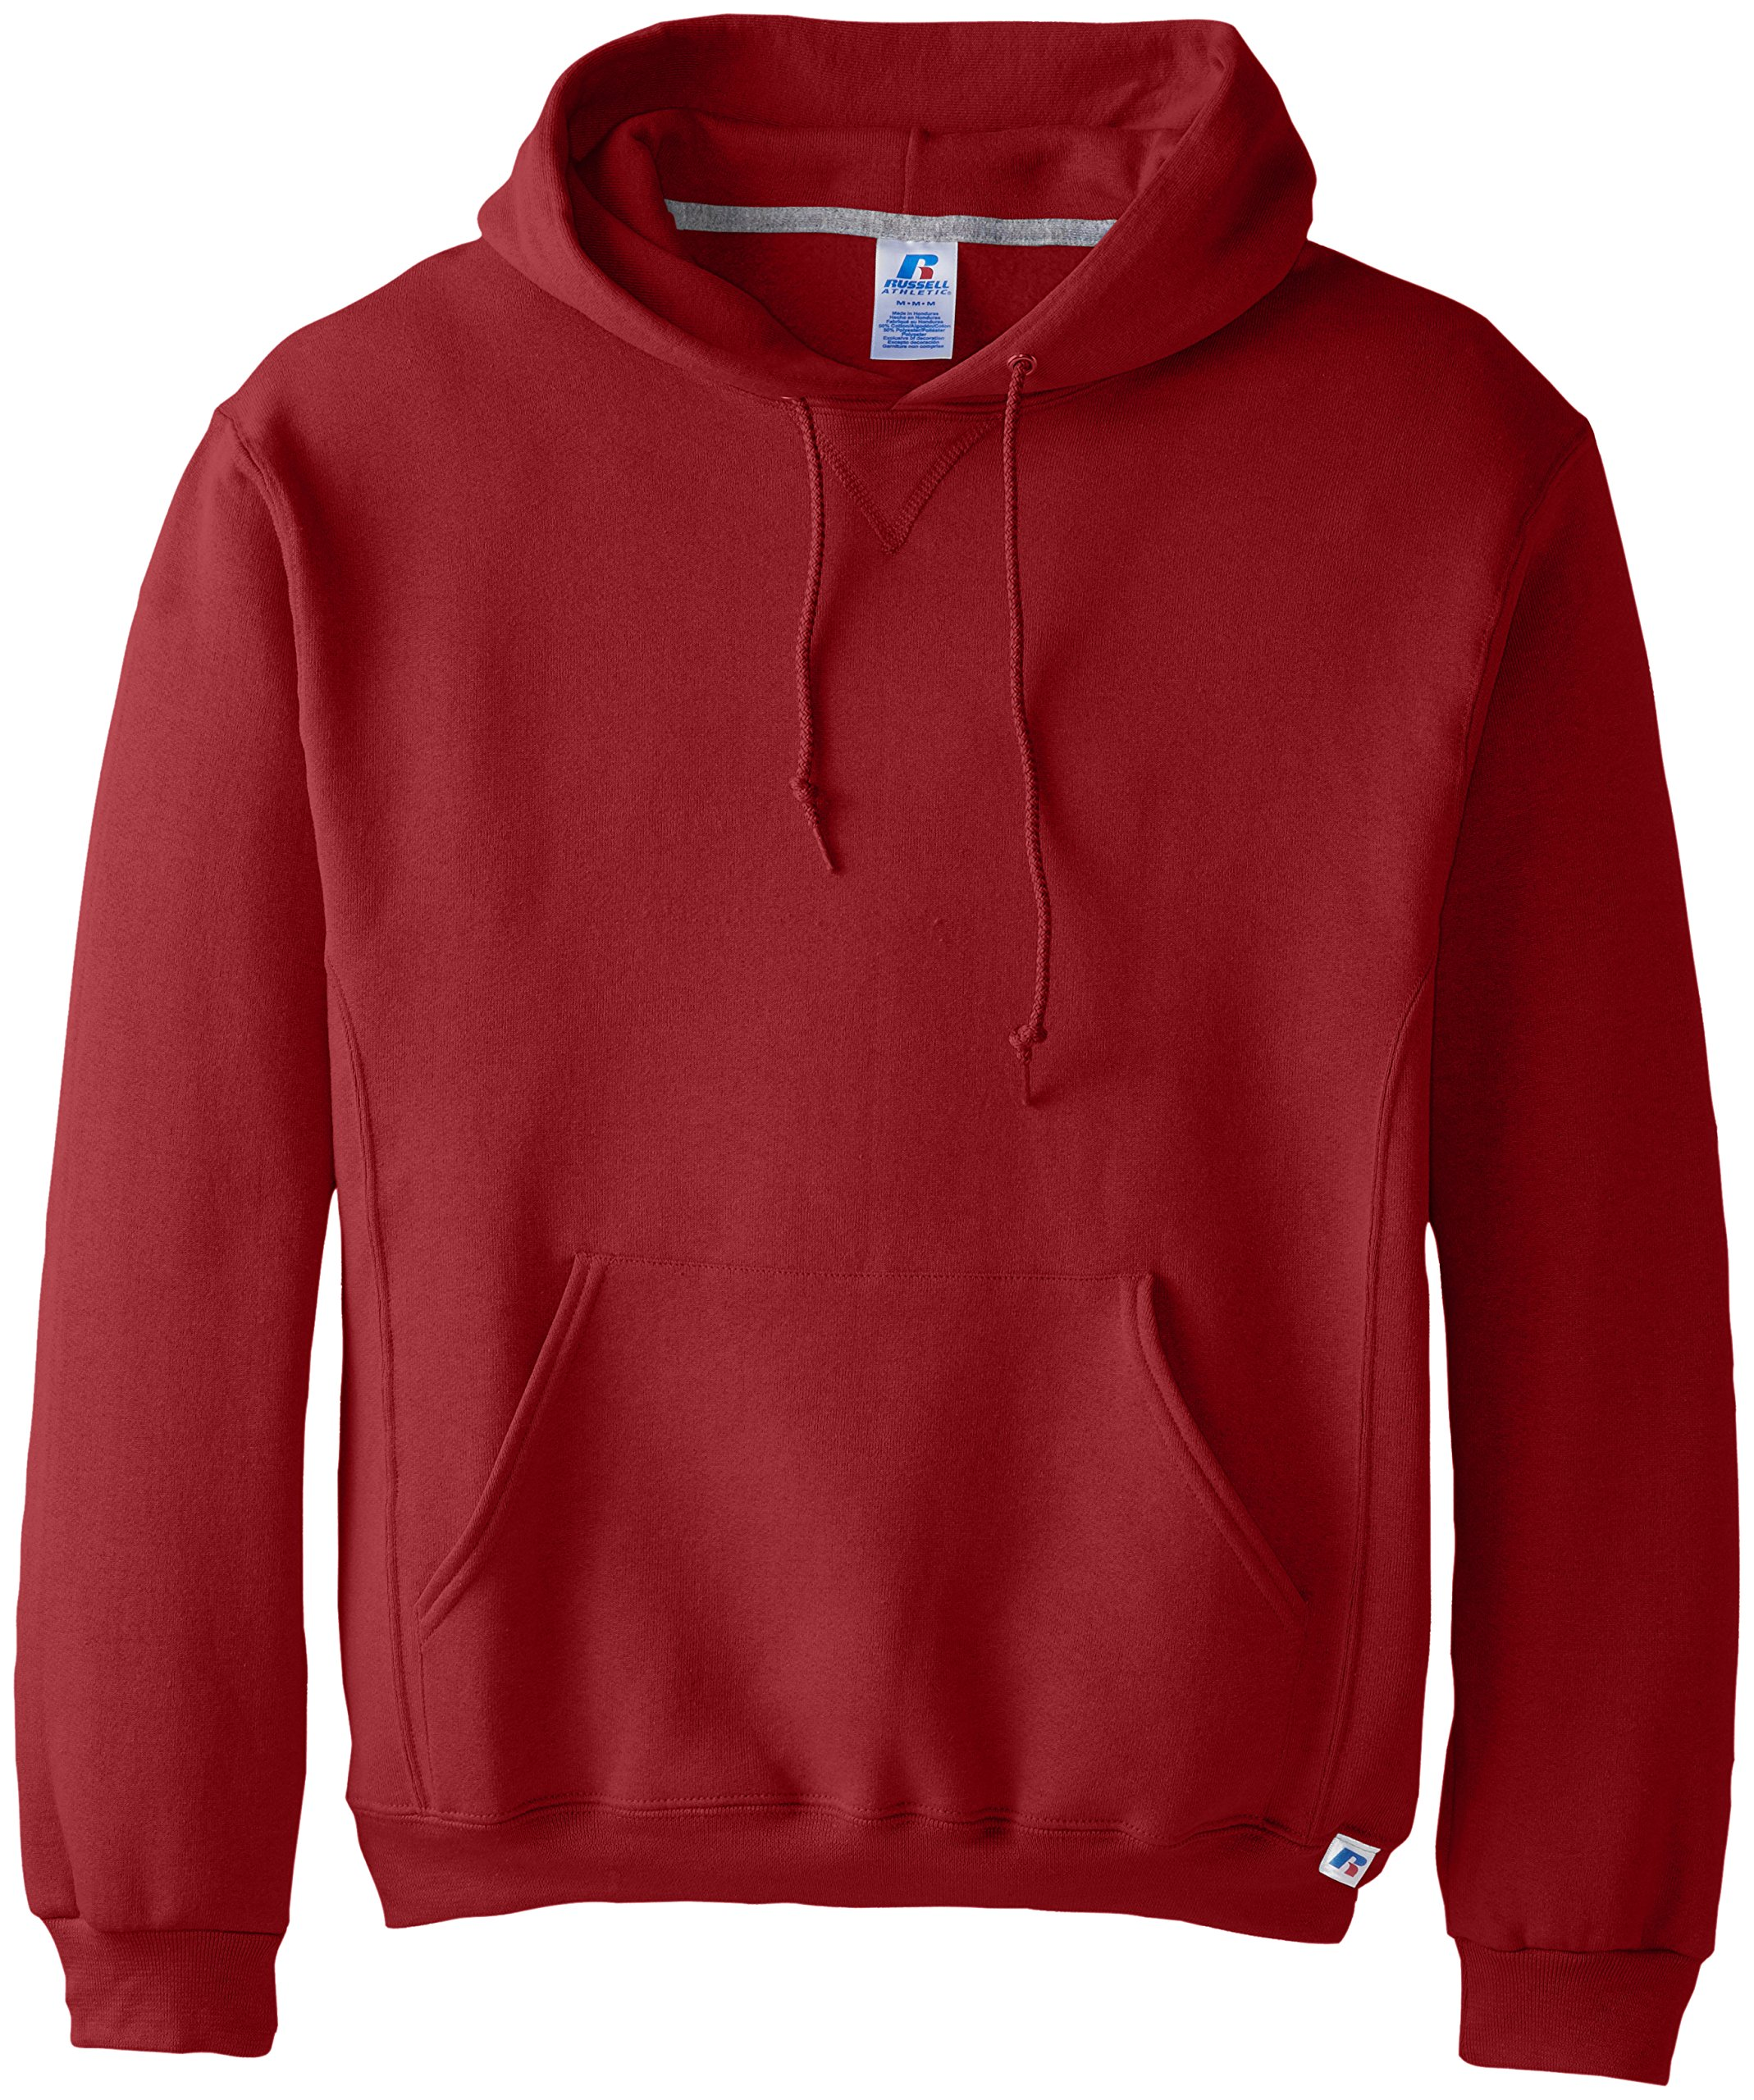 Russell Athletic Men's Dri Power Pullover Fleece Hoodie, Cardinal, 4X-Large